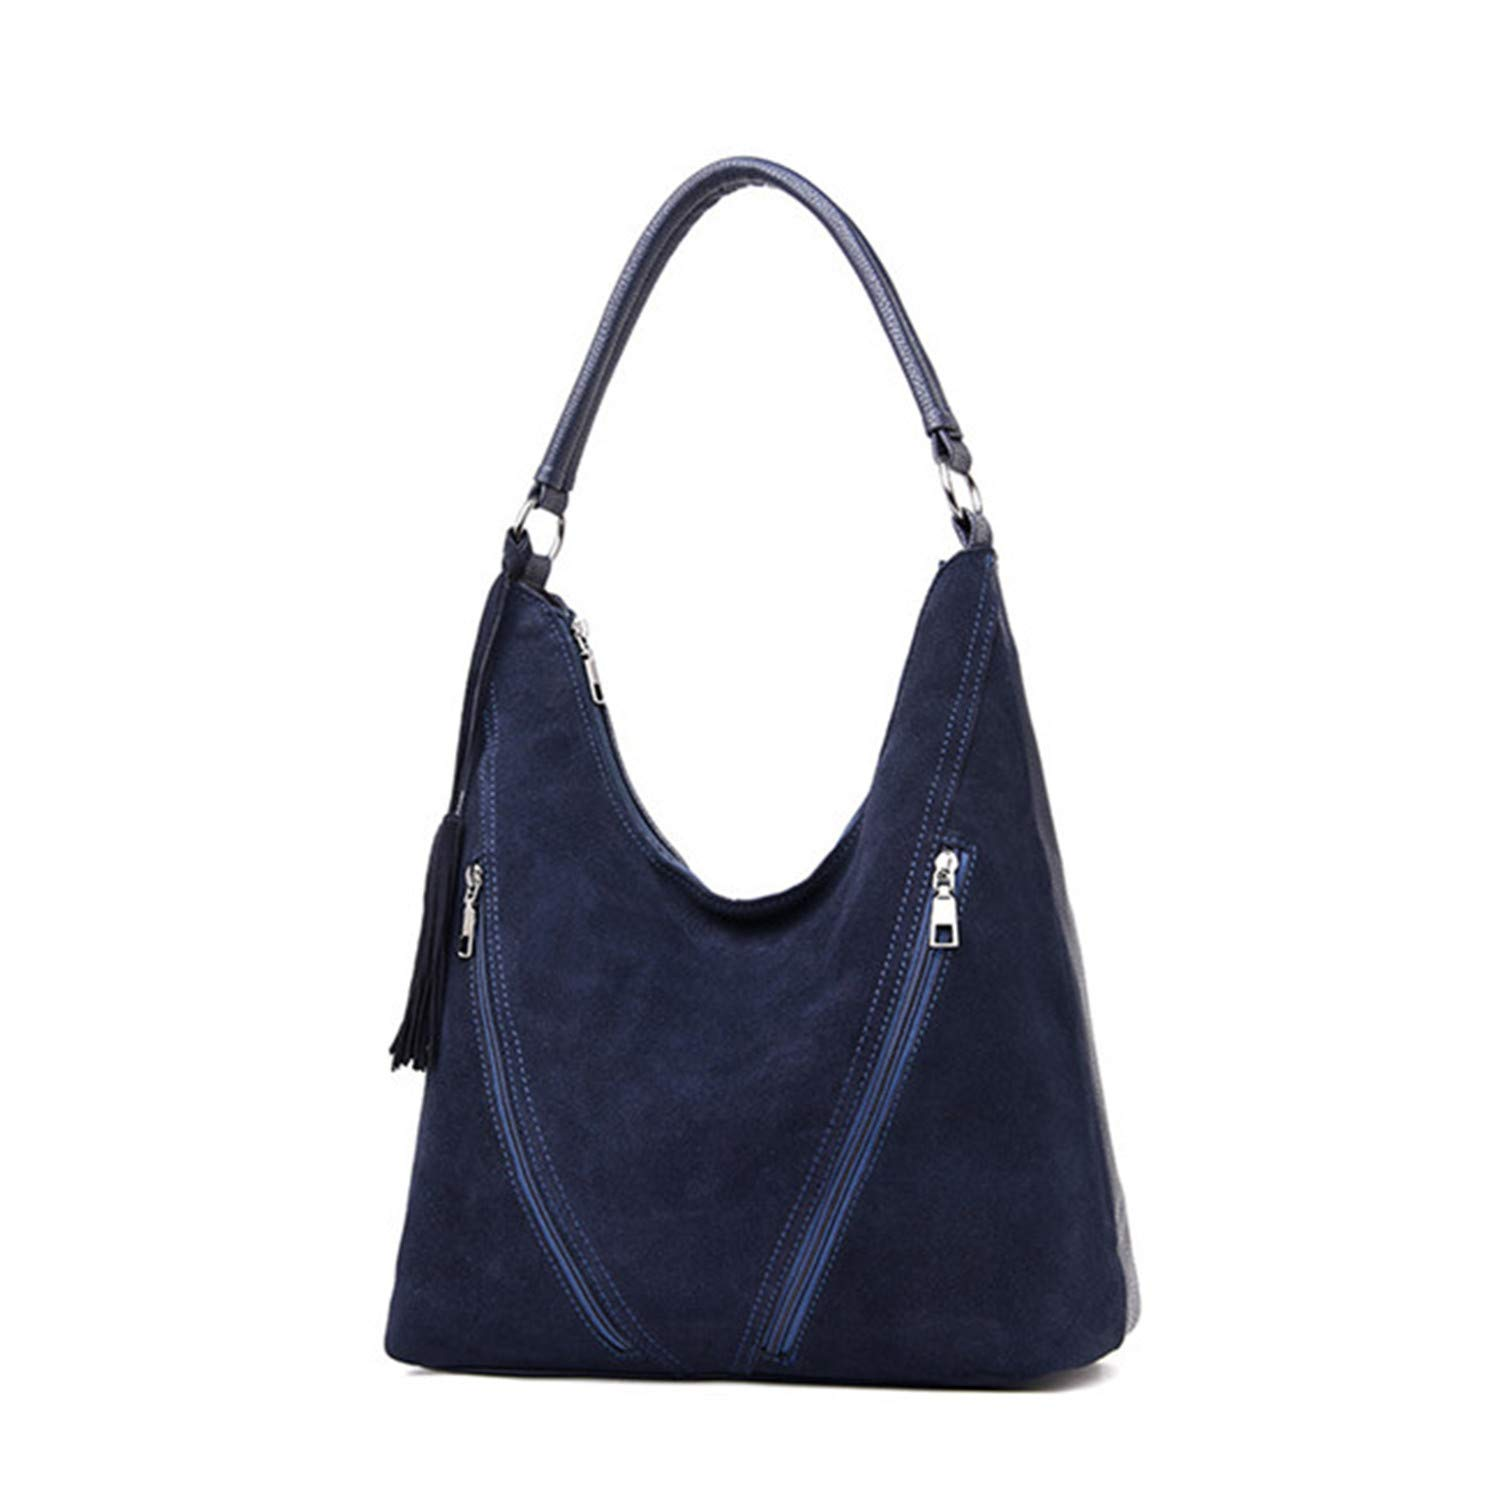 Amazon.com: Woman Handbags Faux Suede Leather Bag Female Bag Casual Tote Large Capacity Shoulder Crossbody Bags Ladies Sac: Shoes